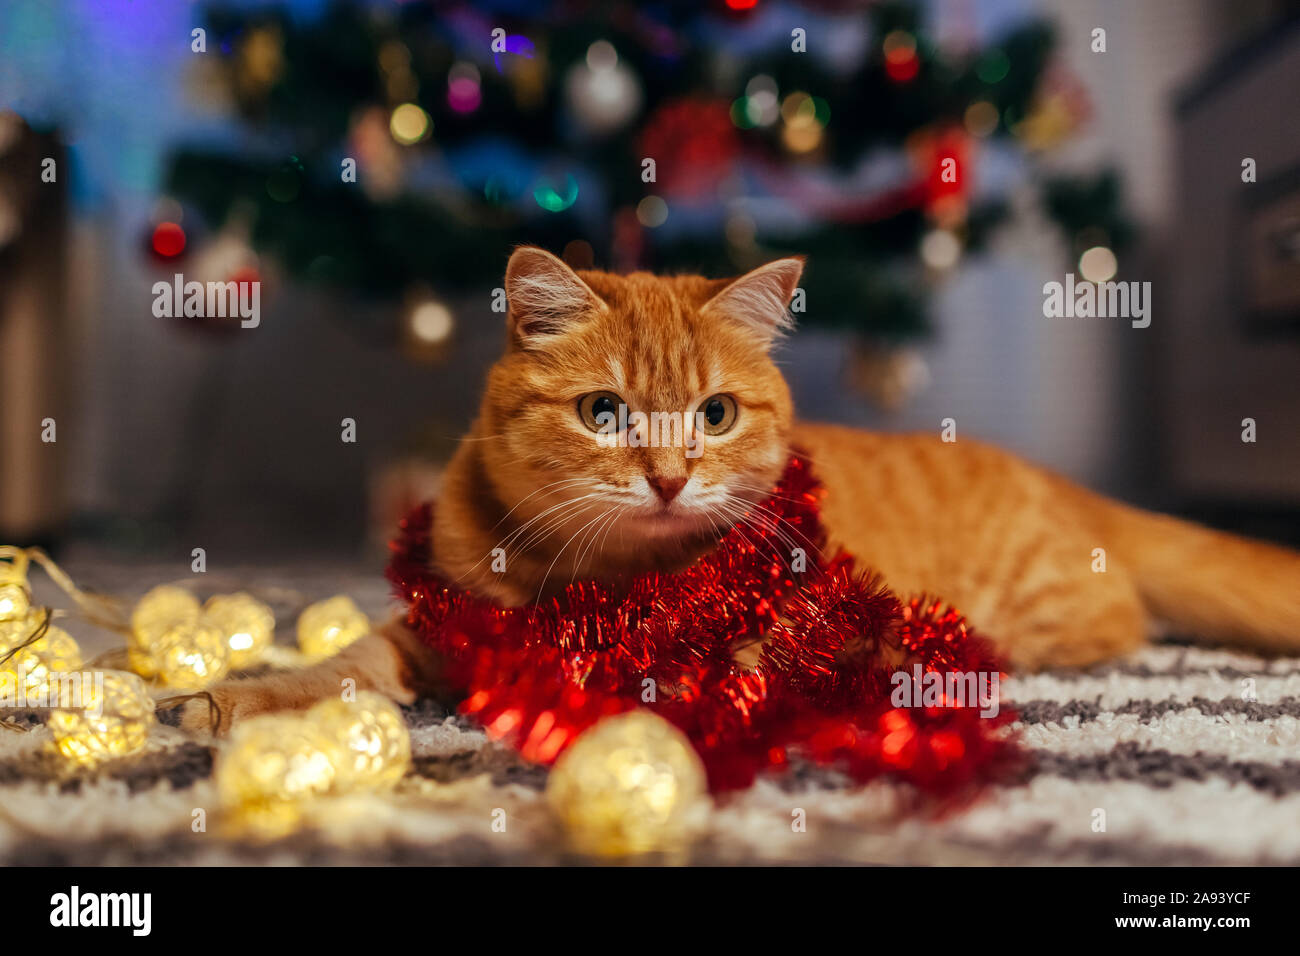 Ginger cat playing with garland under Christmas tree. Christmas and New year concept Stock Photo